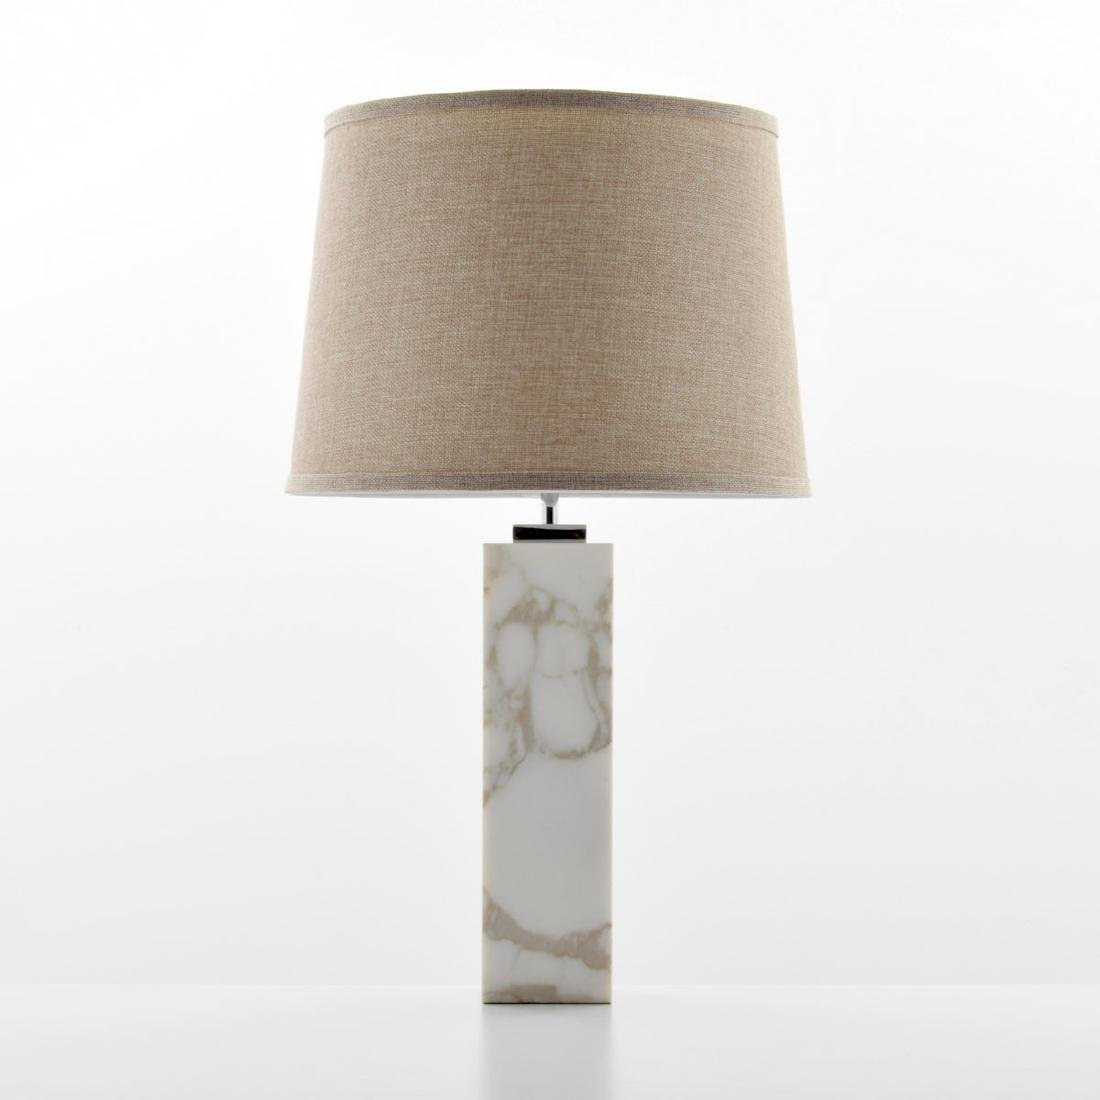 T.H. Robsjohn-Gibbings Table Lamp